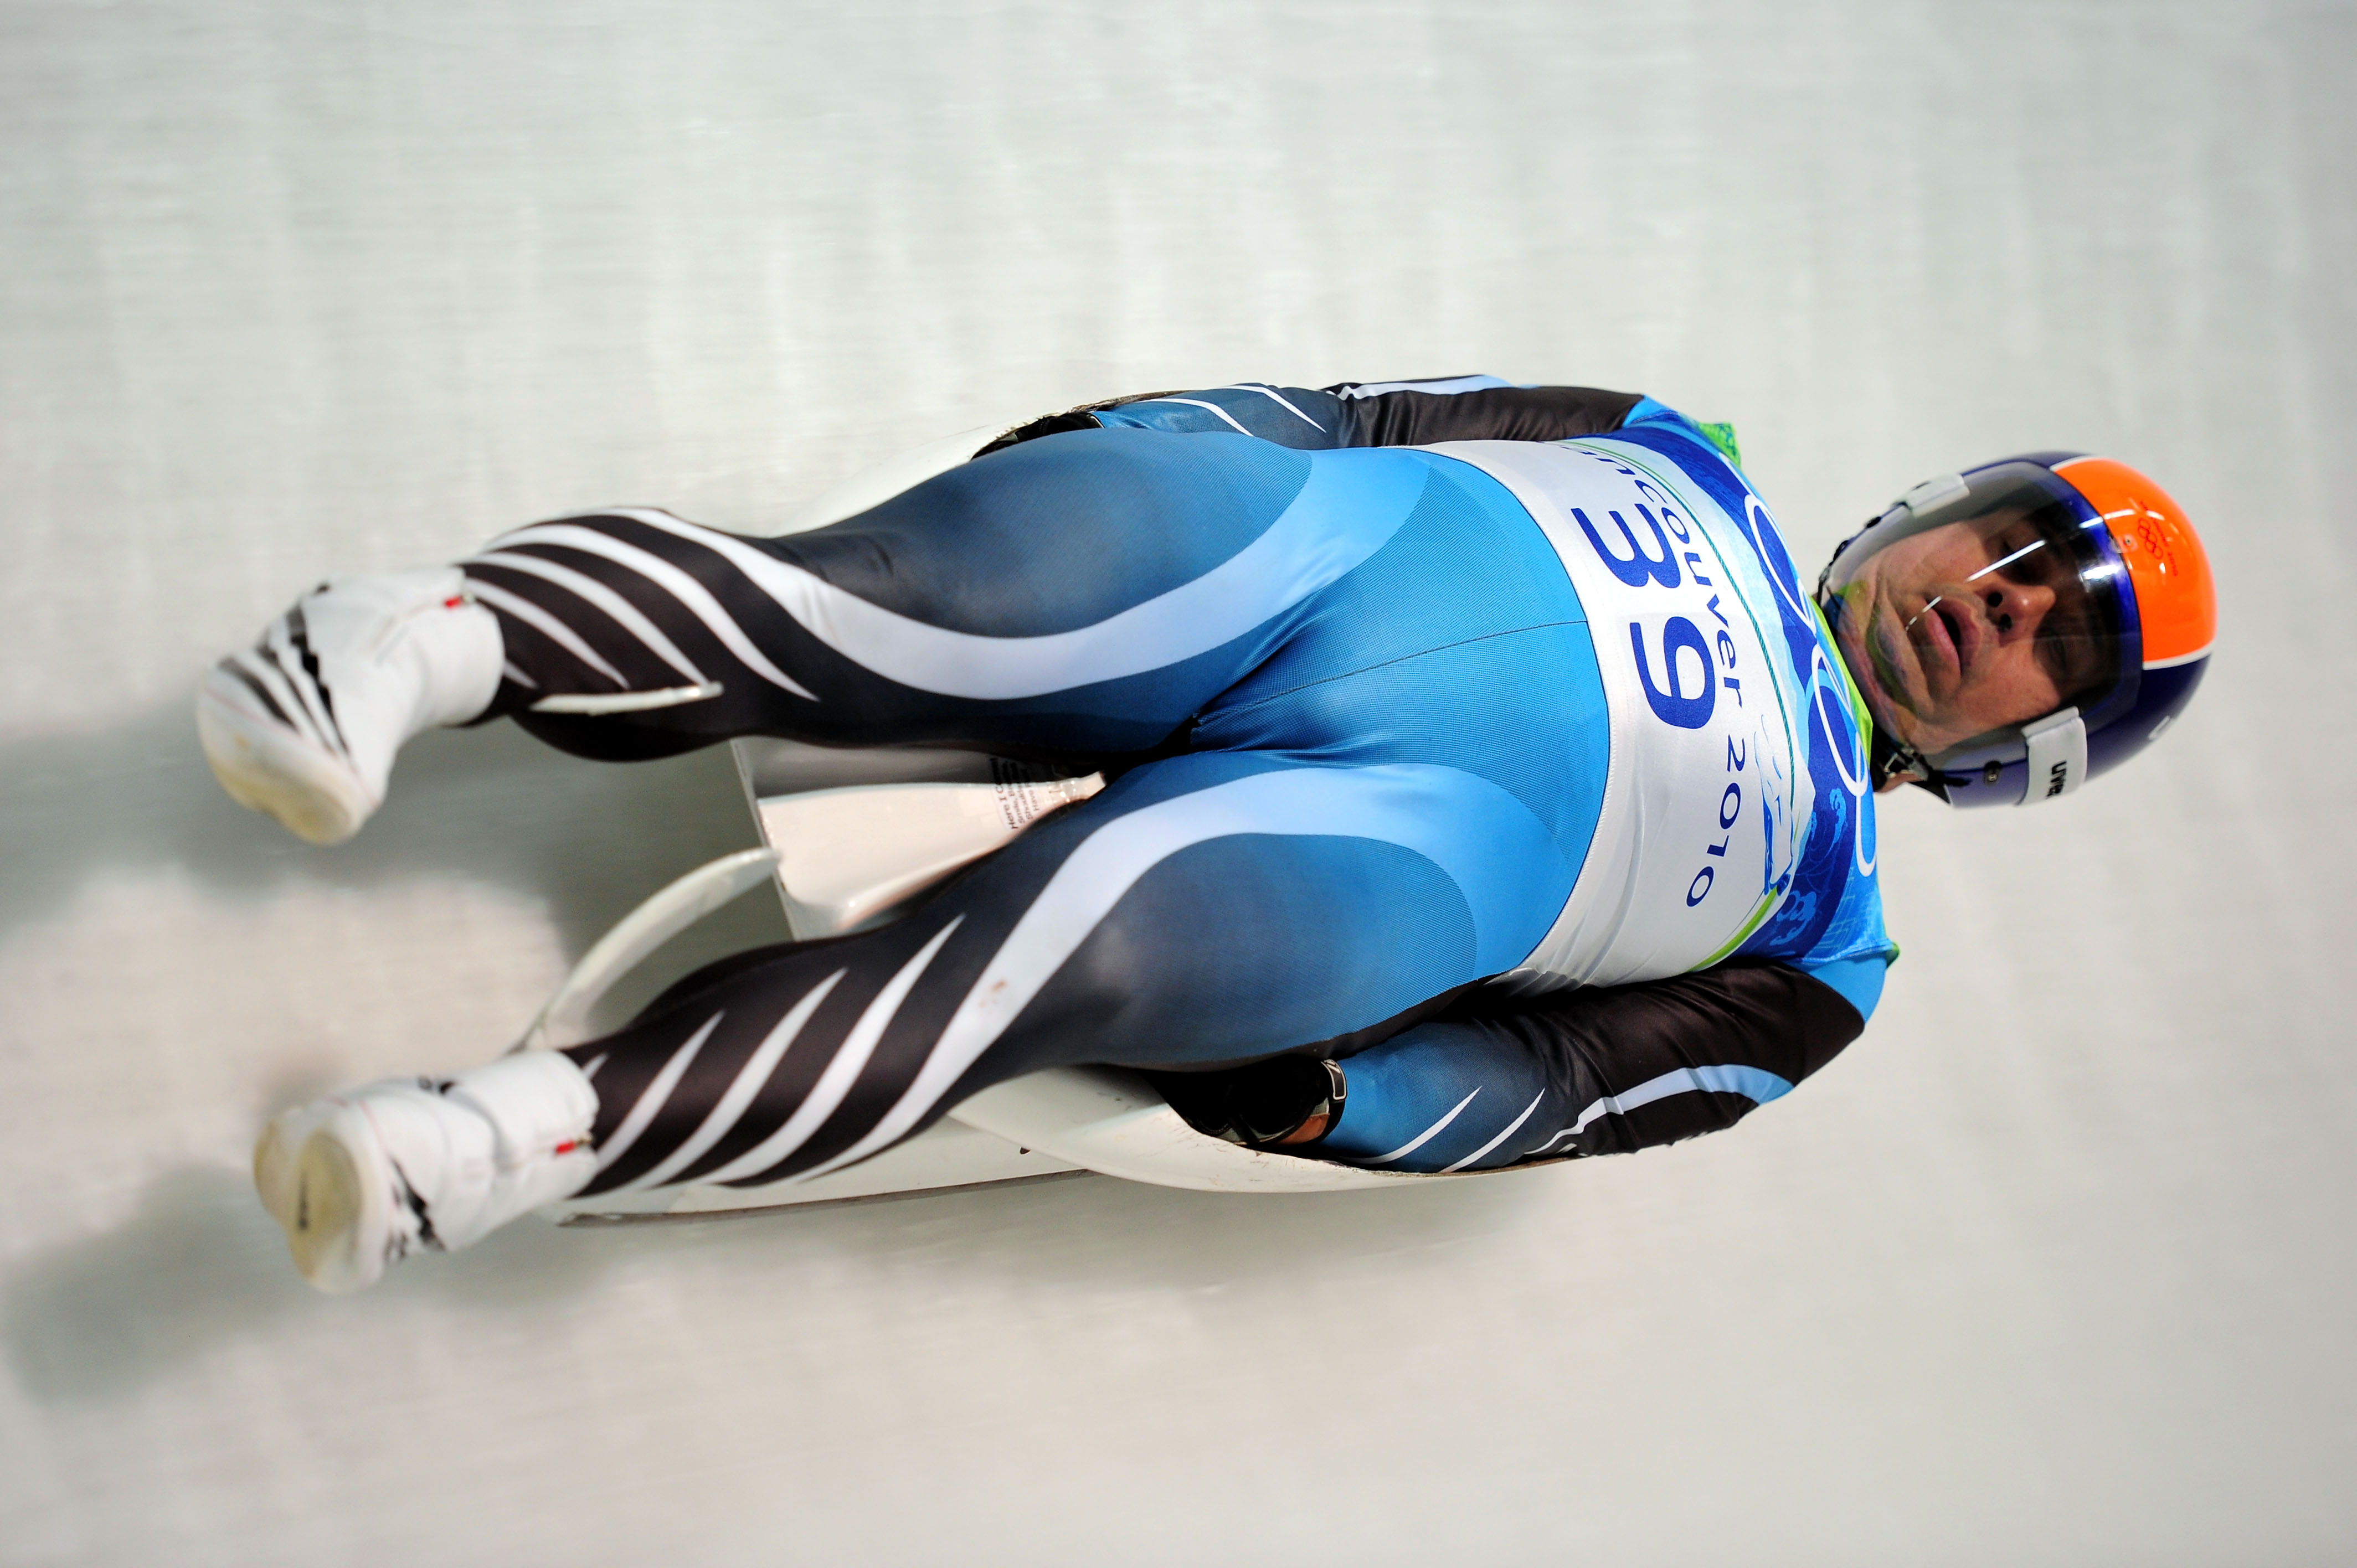 Luge Men's Singles - Day 2